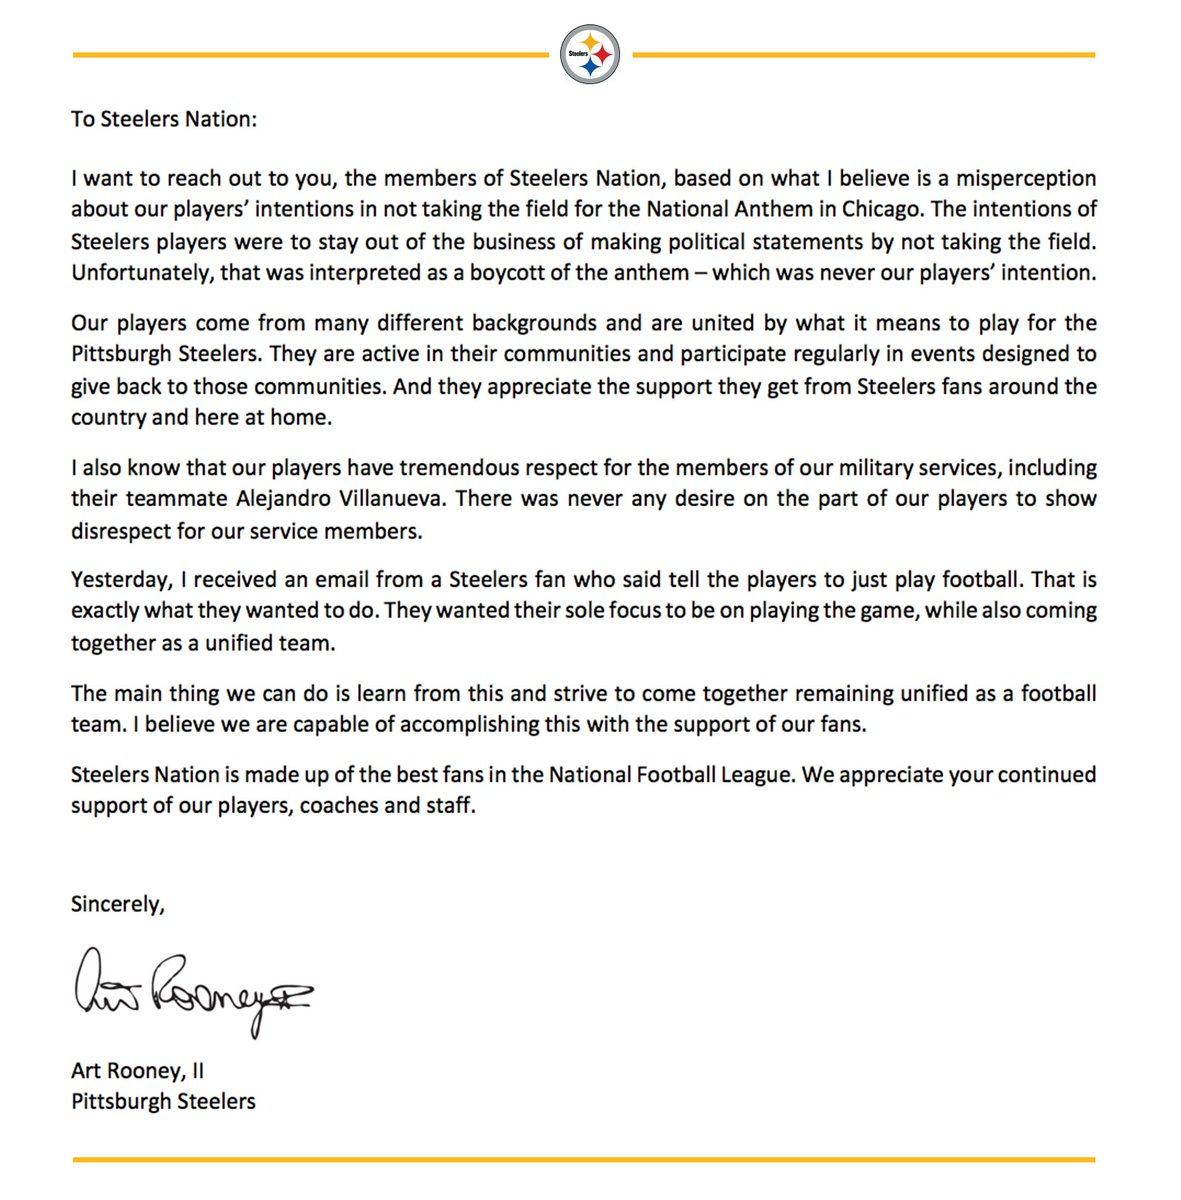 pittsburgh steelers on twitter a letter from steelers president art rooney ii to steelersnation